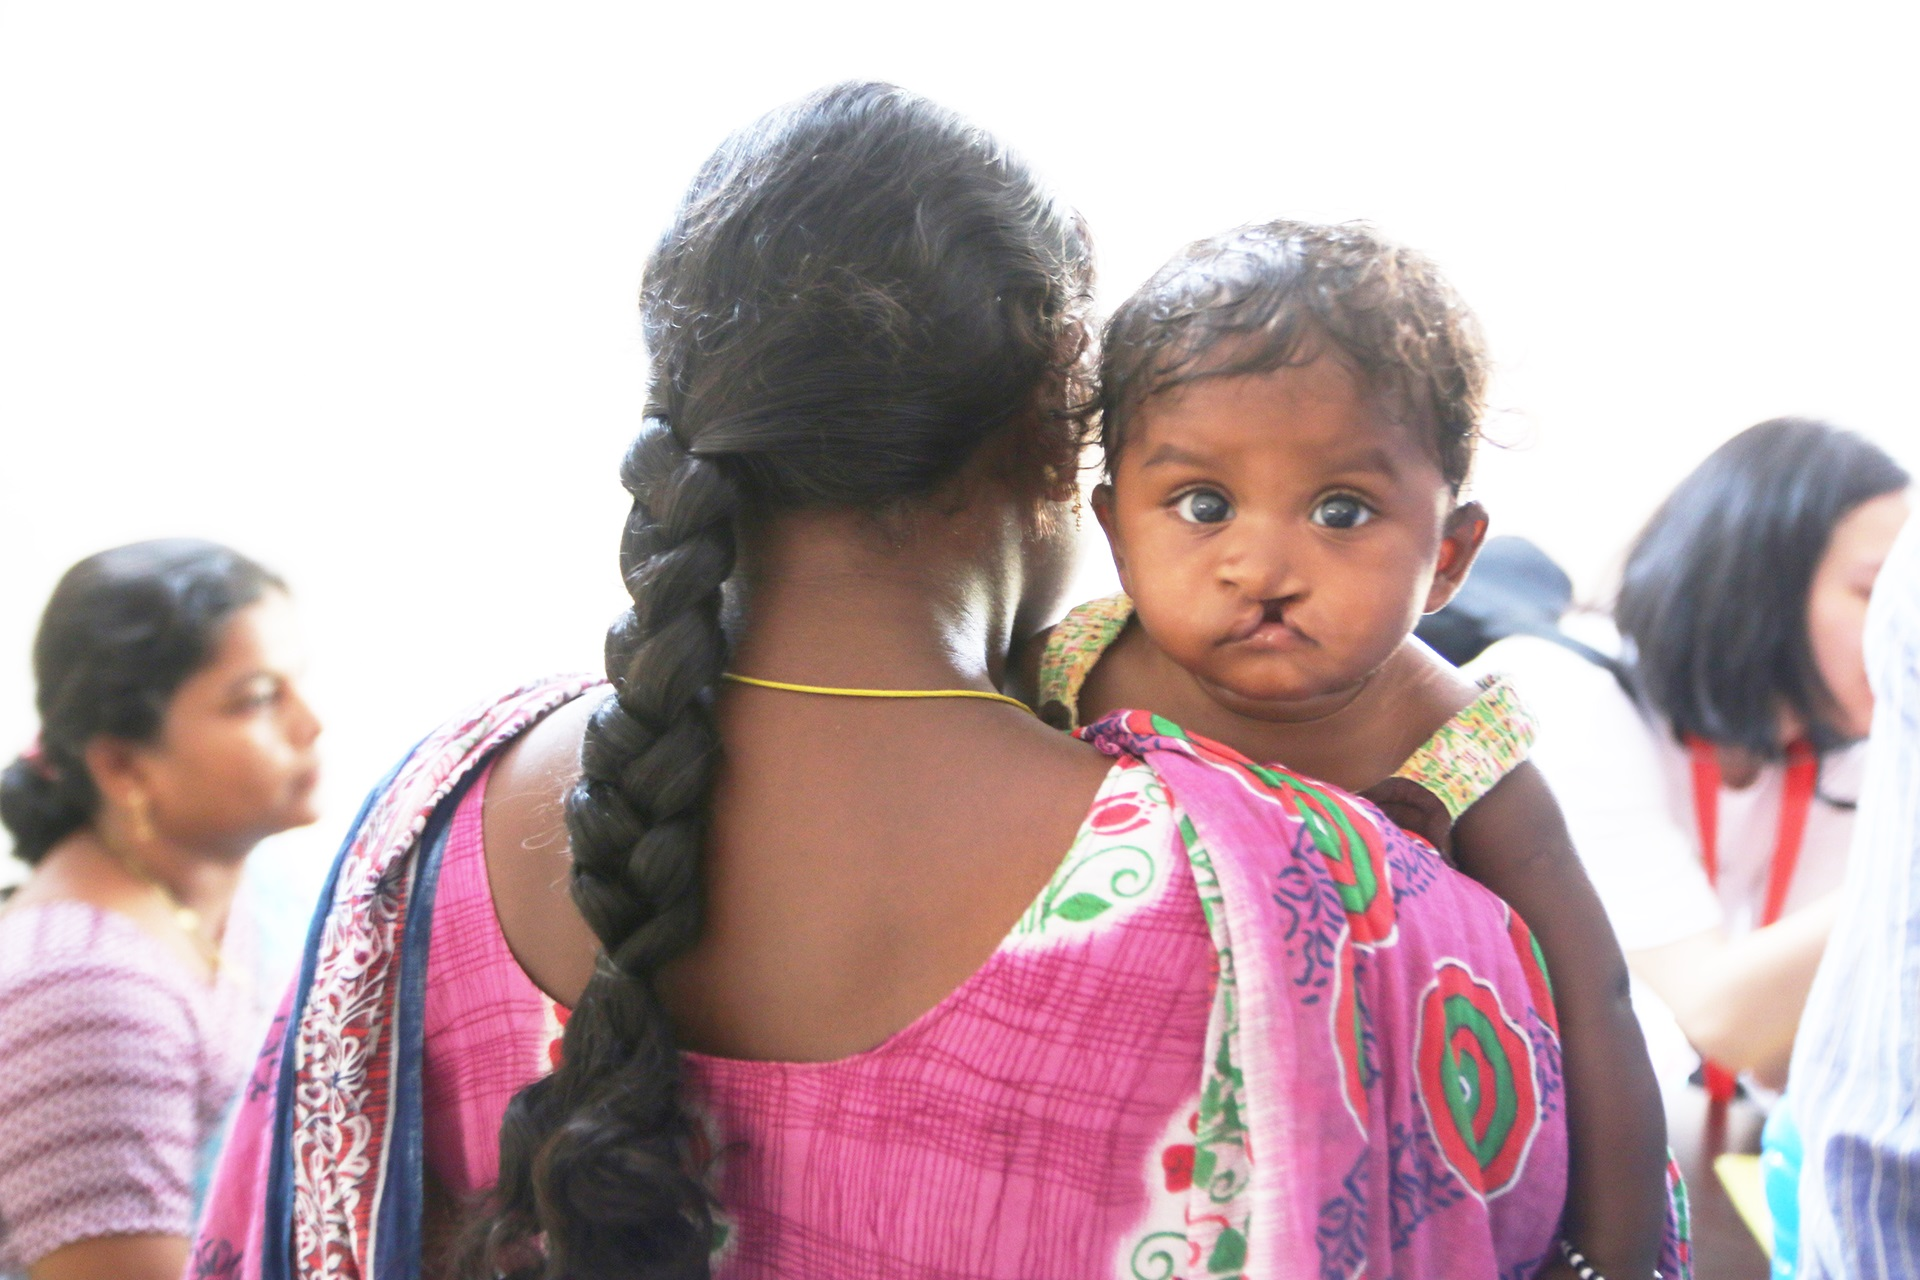 Operation Smile India mission